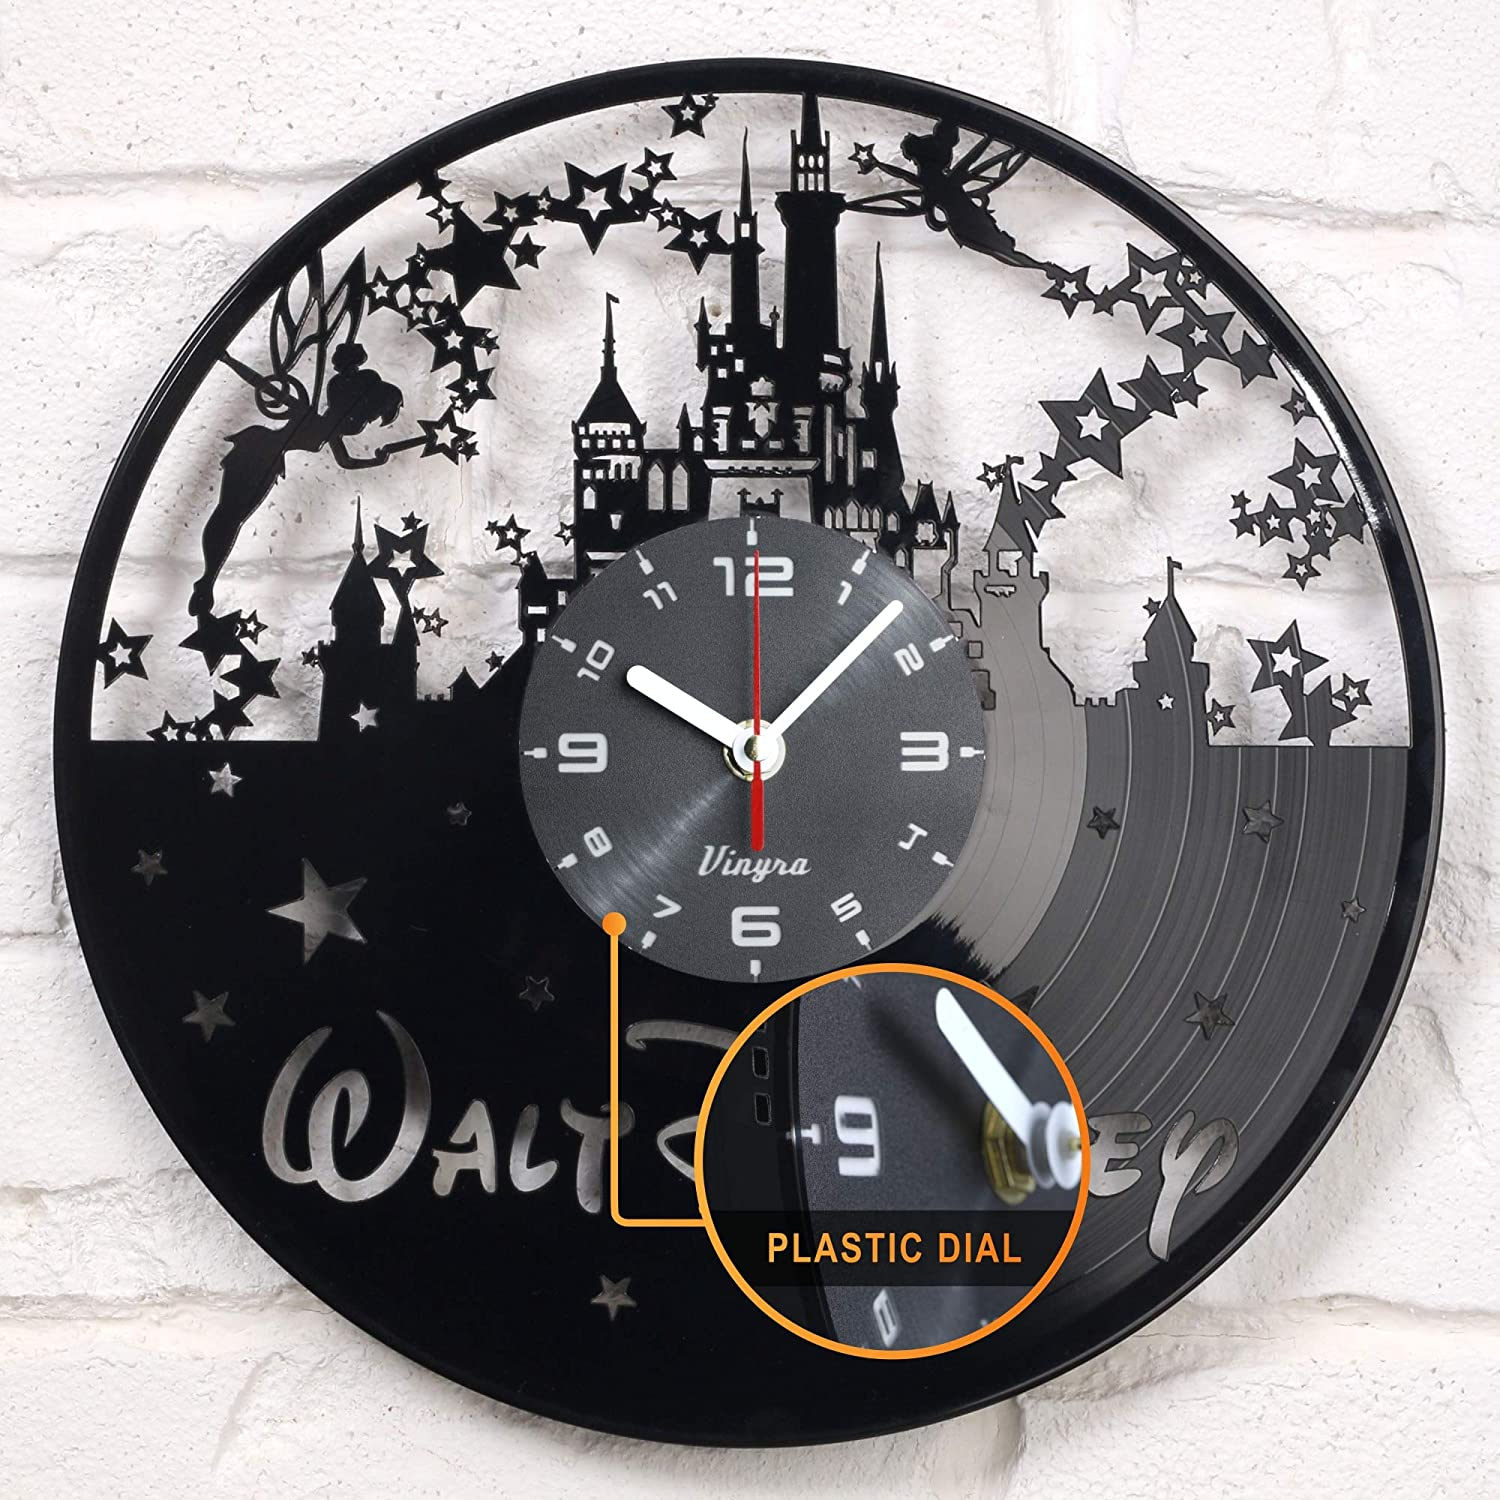 "Vinyra Vinyl Wall Clock compatible with Walt Disney World Mickey Mouse Castle themed Home - Gift Set Idea for Kids, Adults, Boys, Girls and Women - Nursery Art Vintage Decor, 12"" LP Record Clock Black"